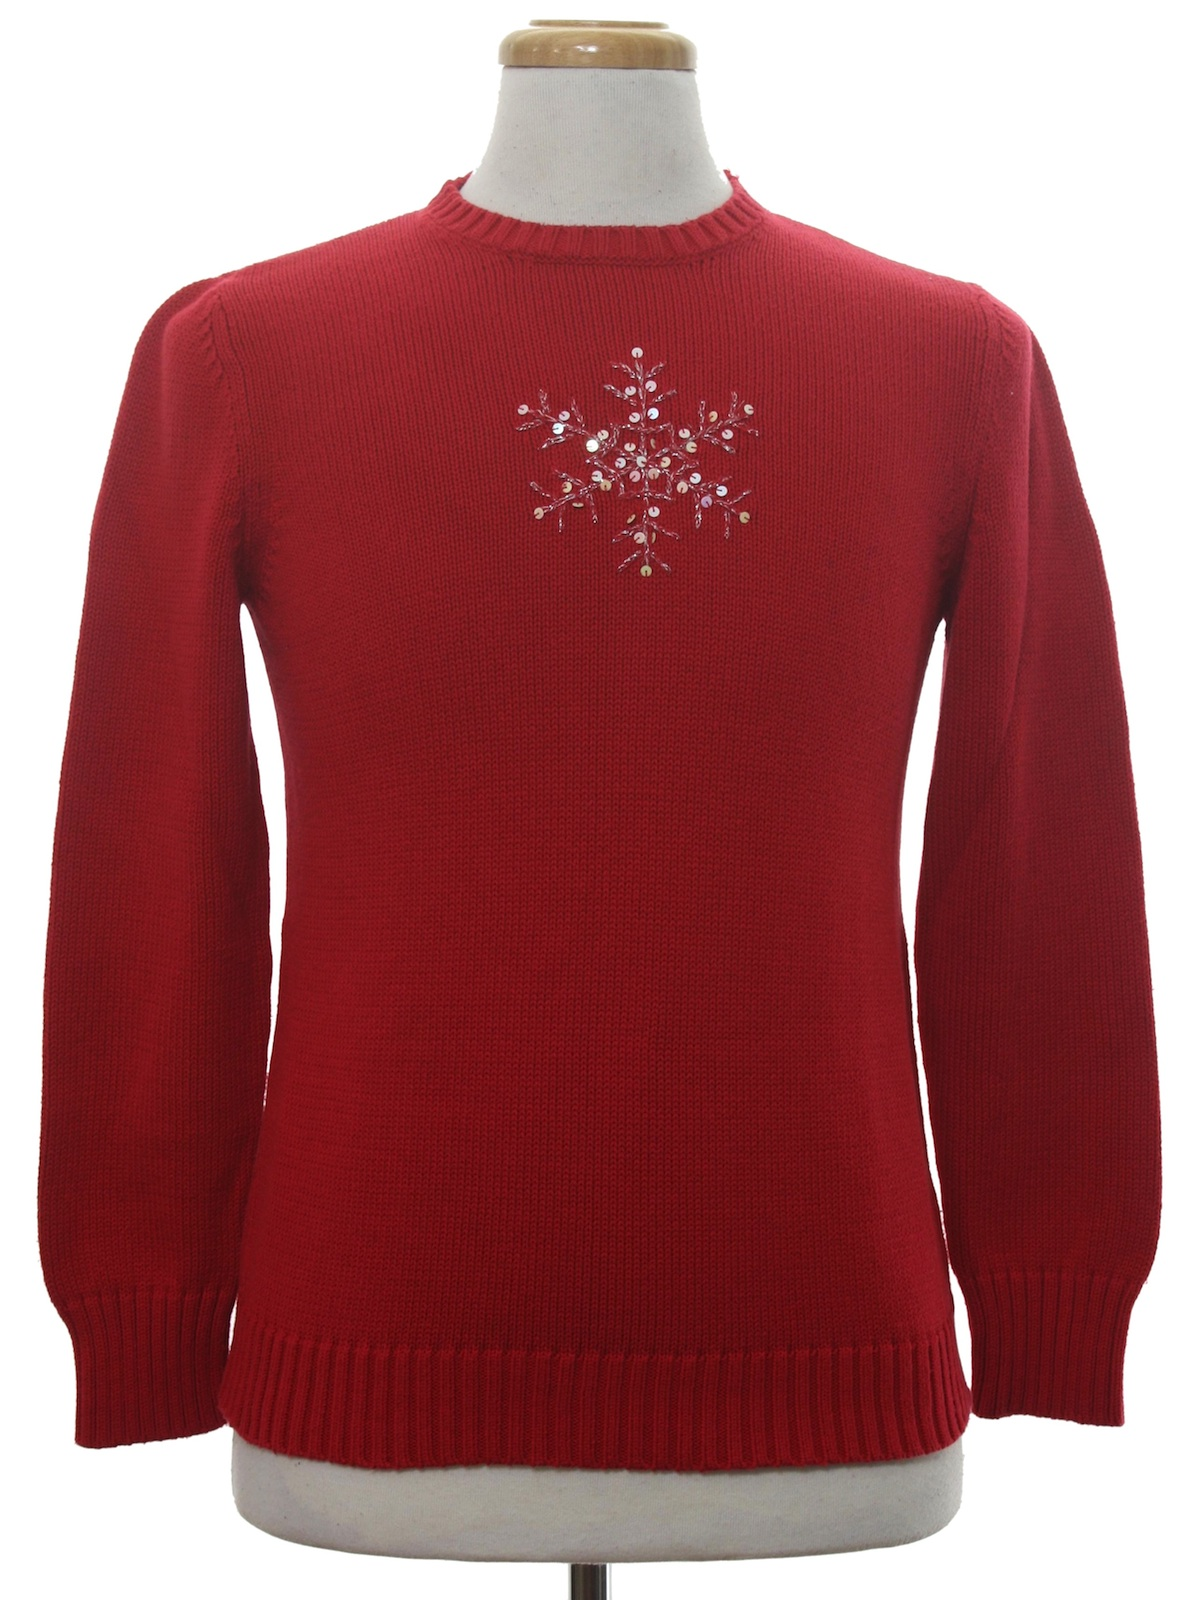 Womens Minimalist Ugly Christmas Sweater Two Hearts